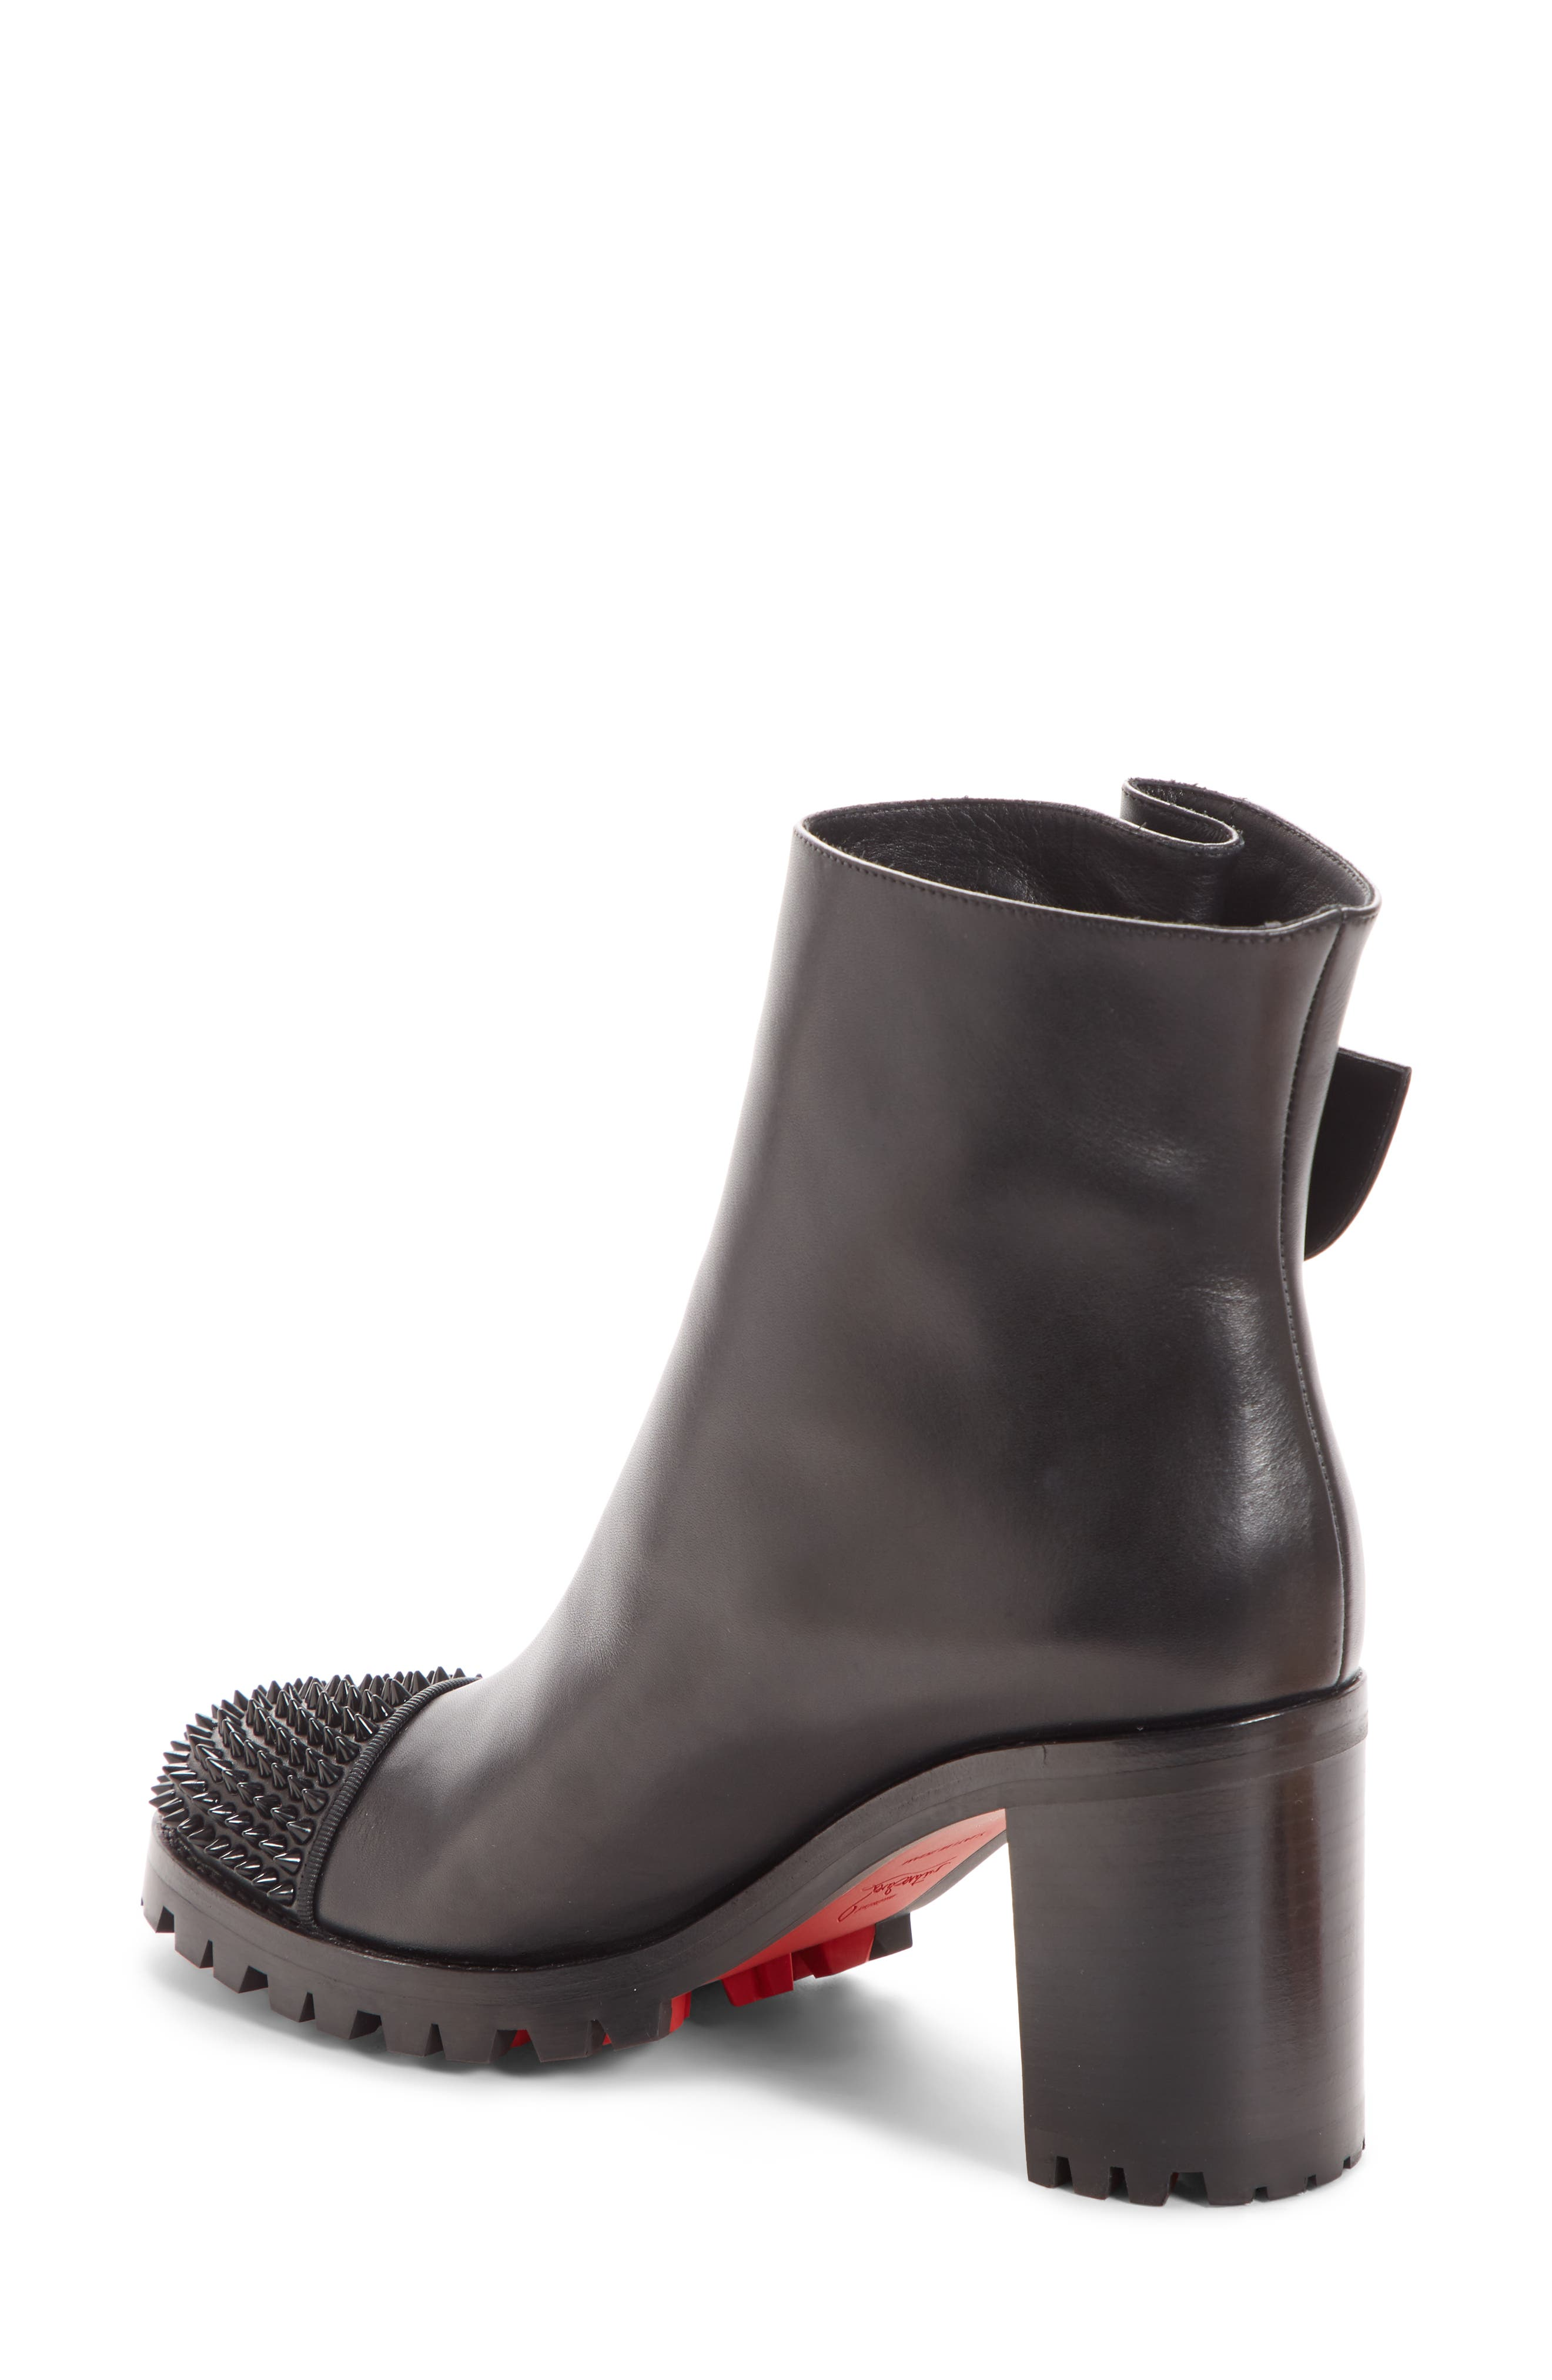 CHRISTIAN LOUBOUTIN,                             Olivia Spiked Boot,                             Alternate thumbnail 2, color,                             001